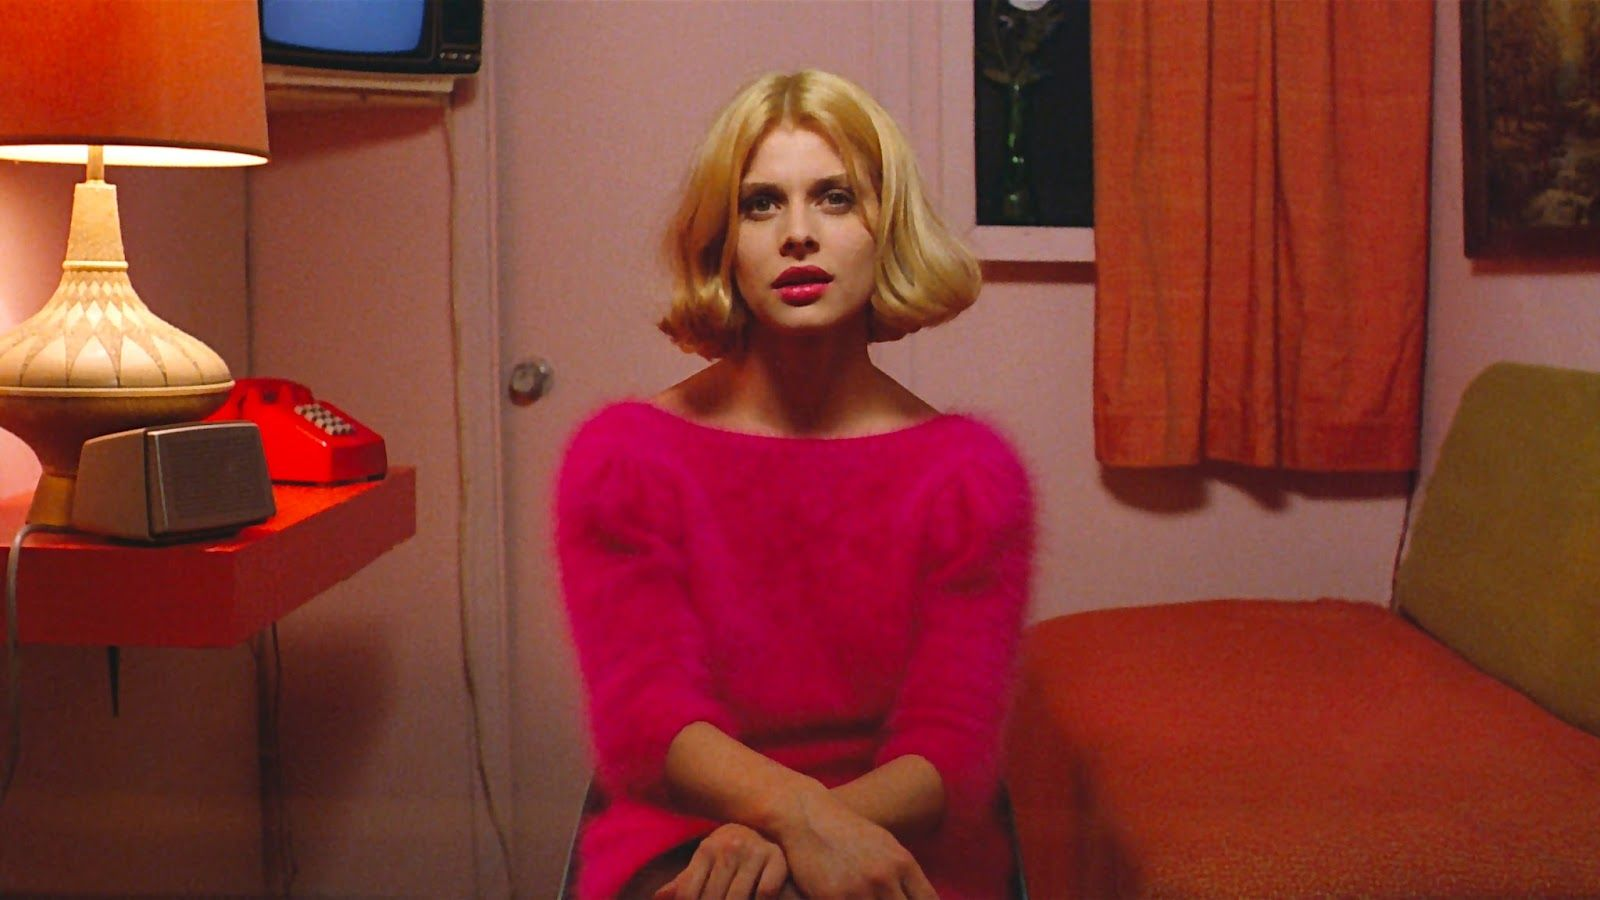 paris texas netflix